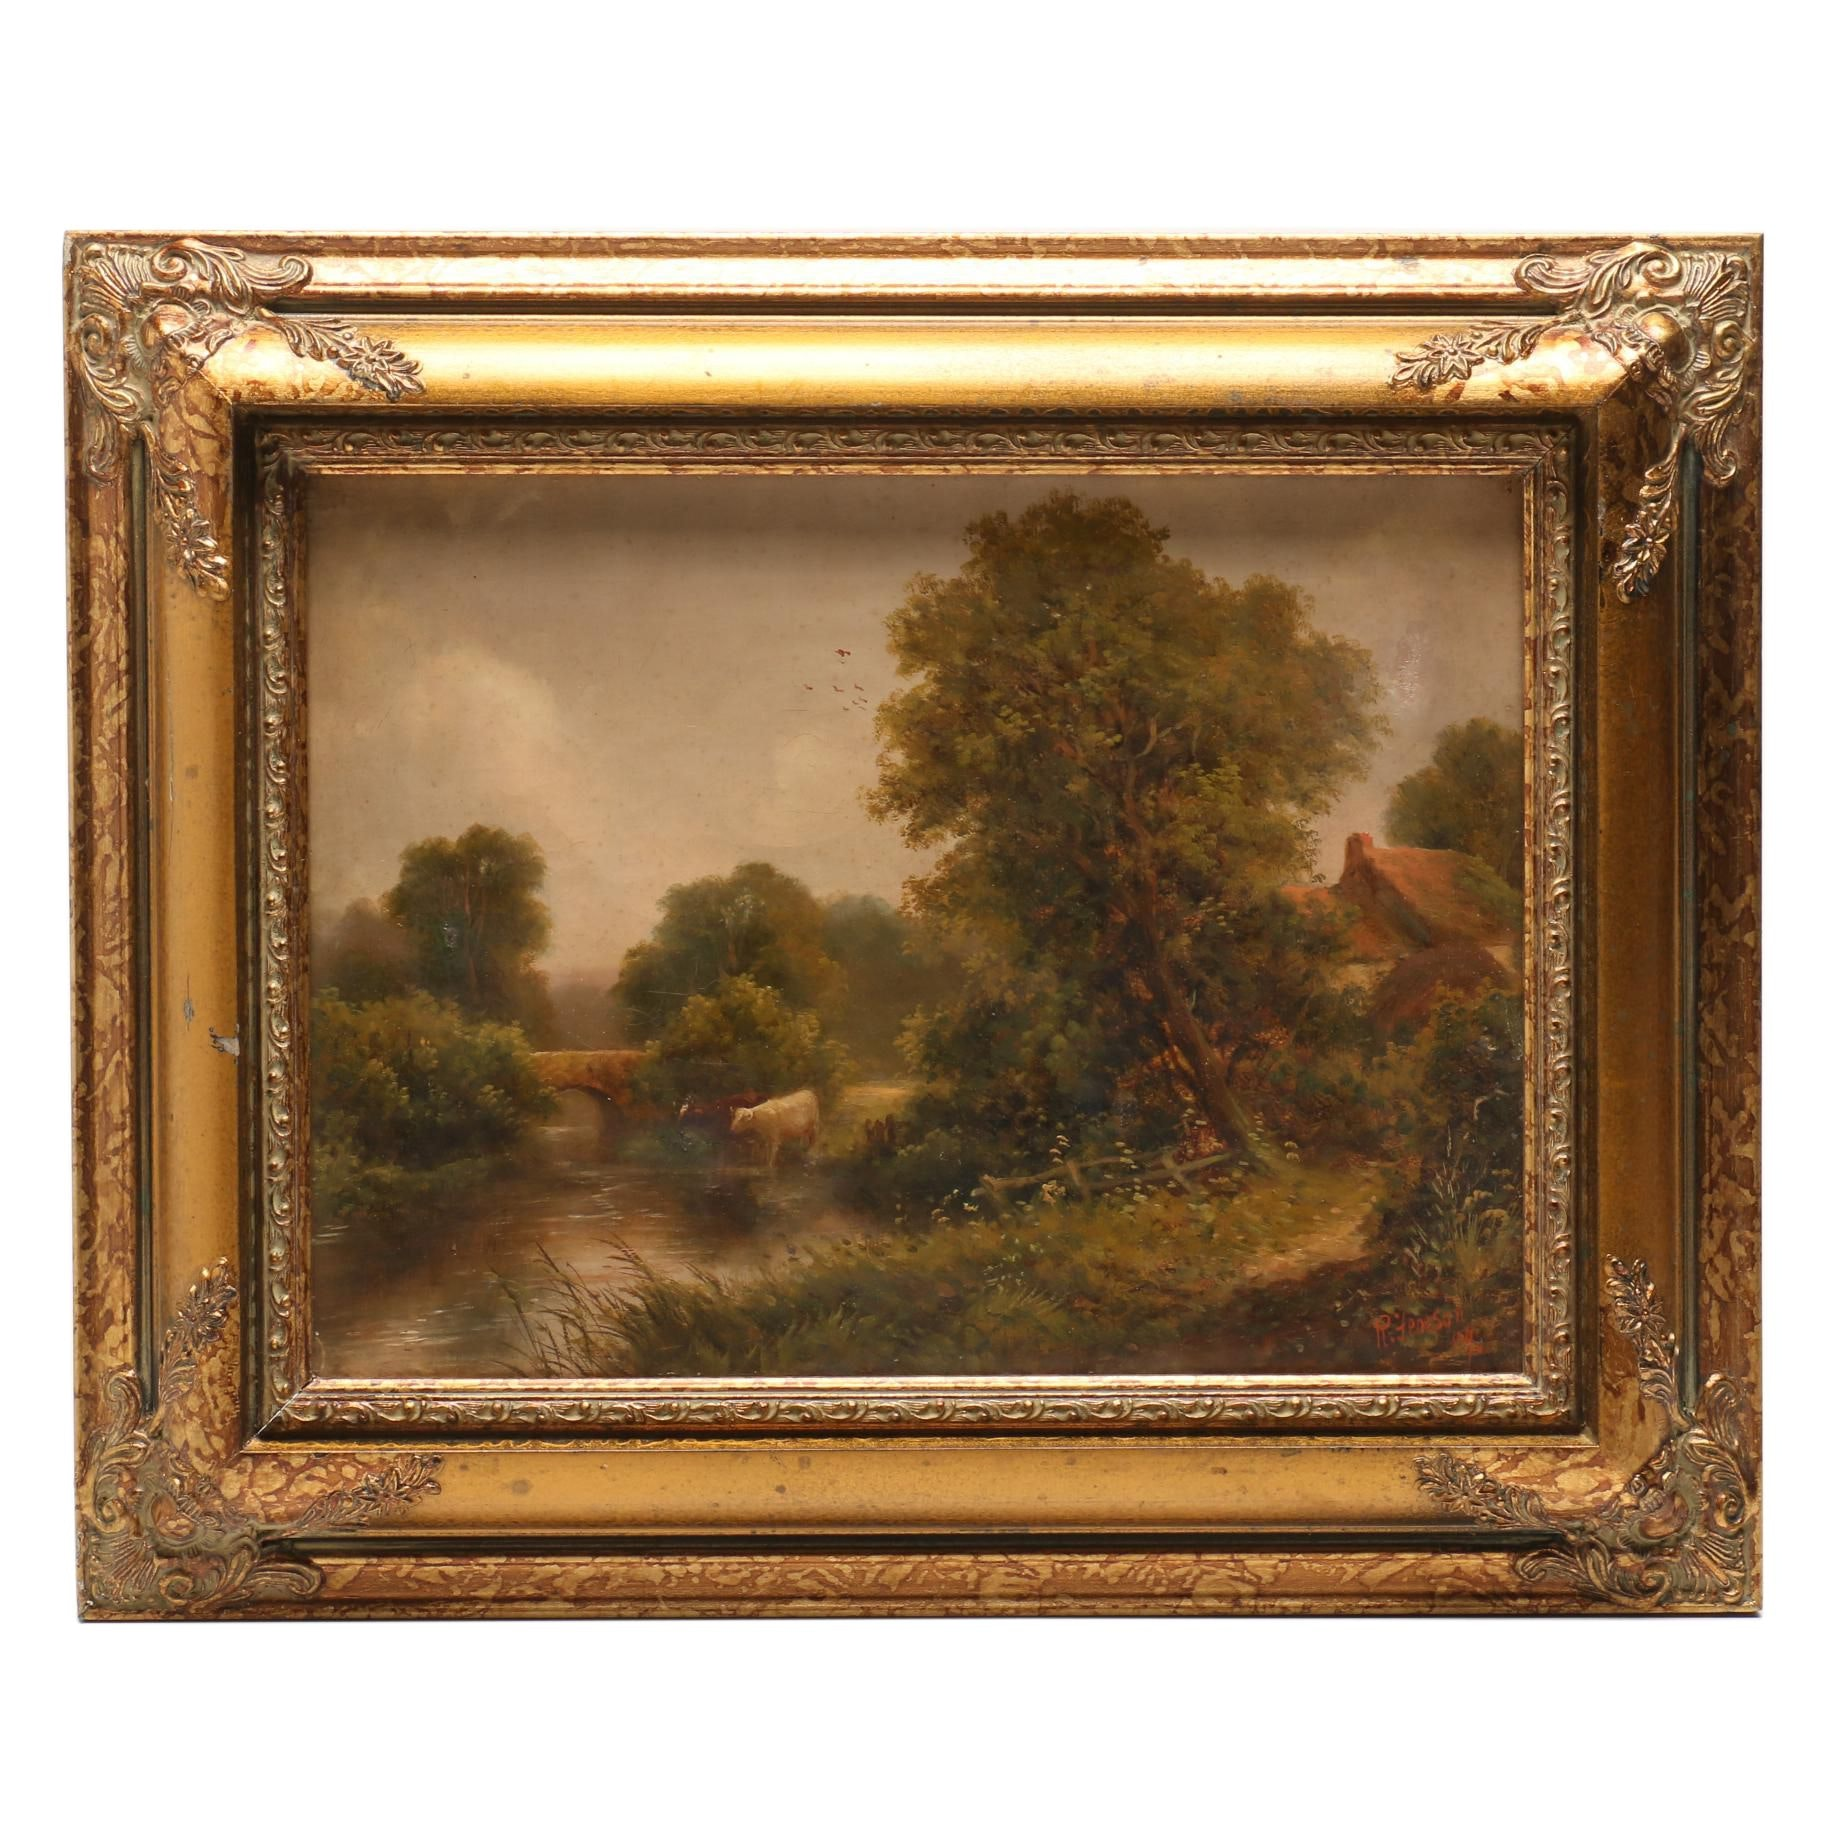 Robert Robin Fenson 1904 Oil Painting of Pastoral Scene with Cattle